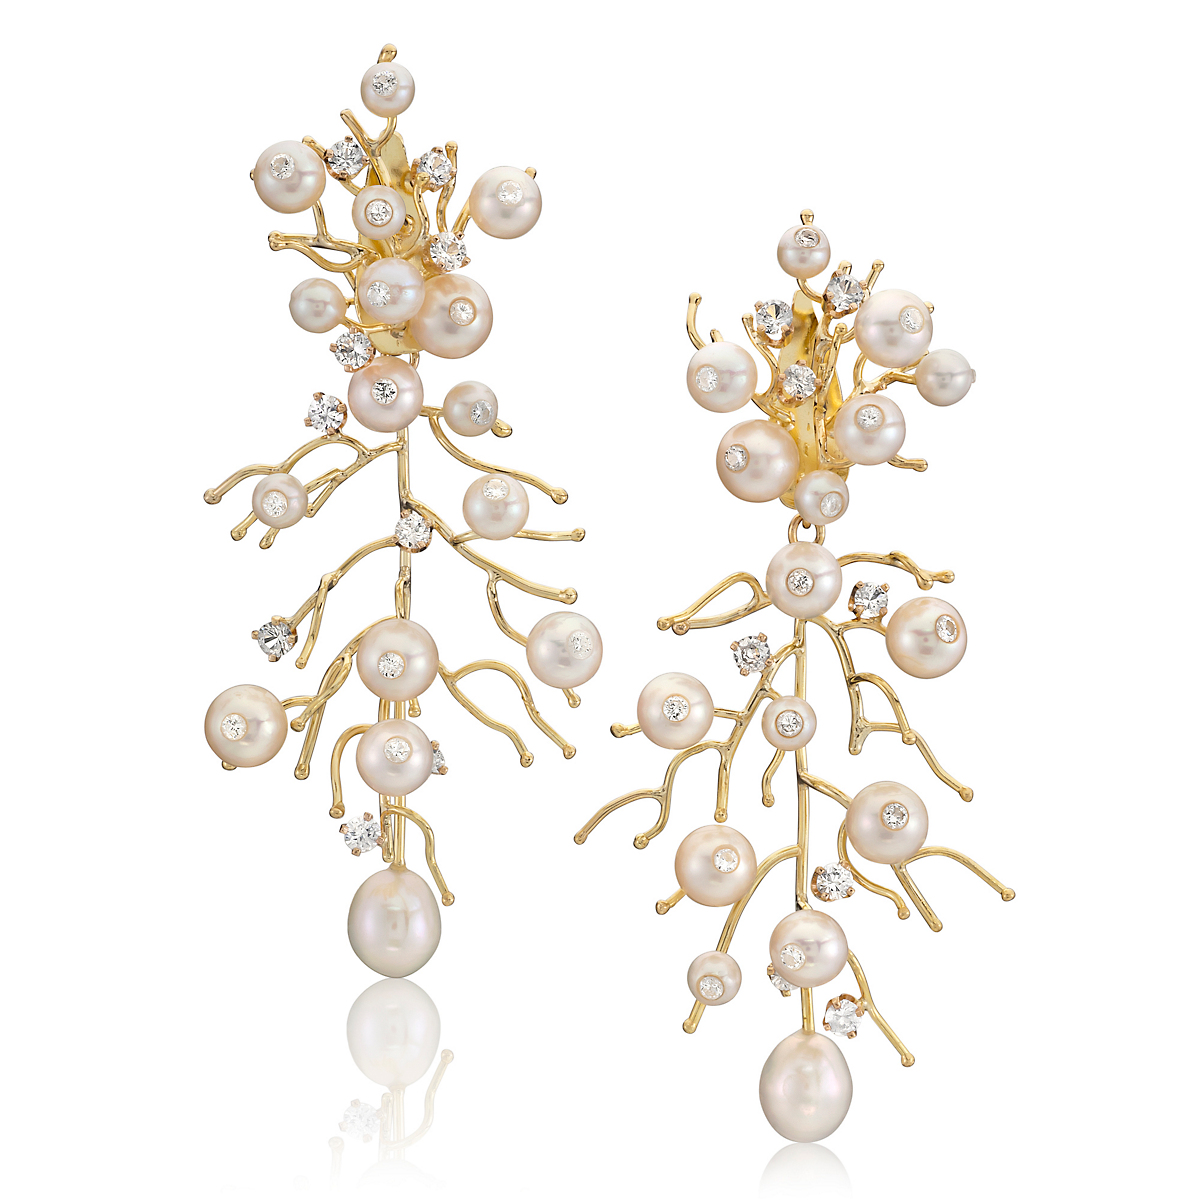 Russell Trusso Pearl, Diamond & White Sapphire La Mer Earrings